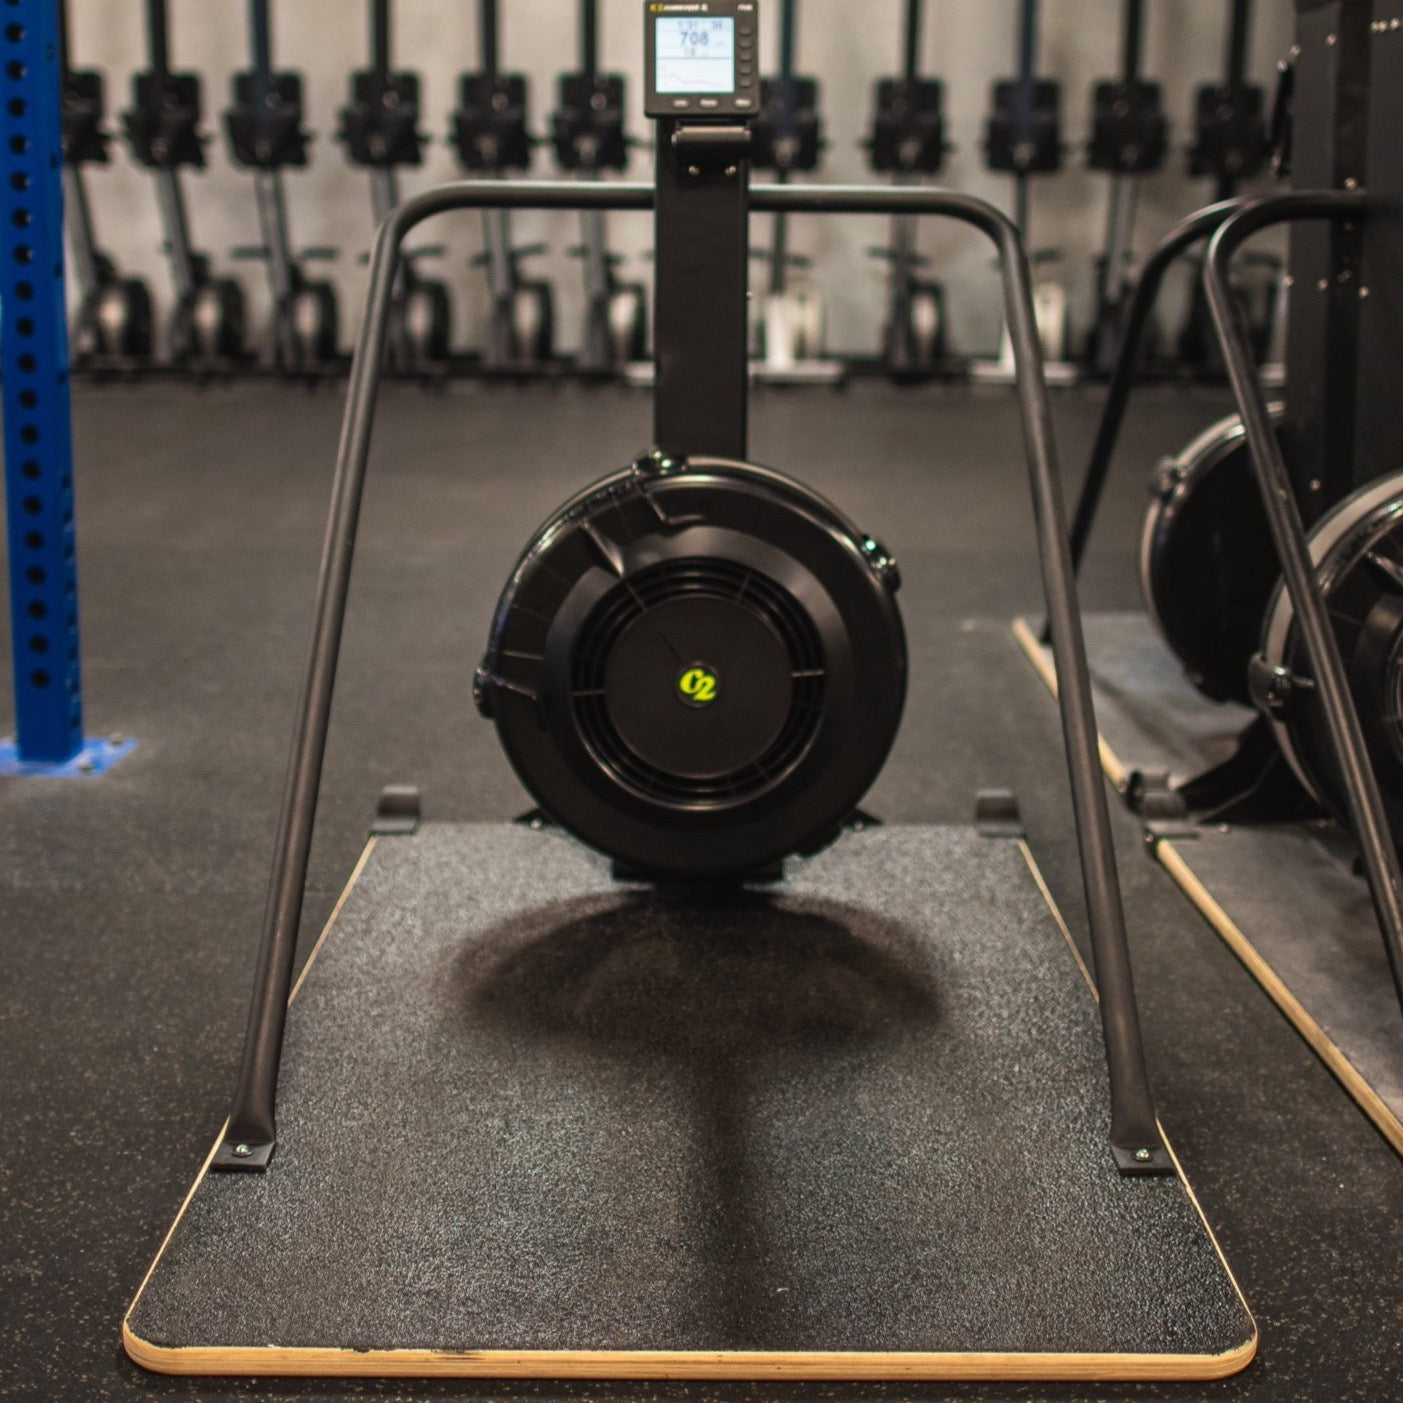 Ski Erg With Equip Adaptive Wider Base pictured straight on in a gym setting